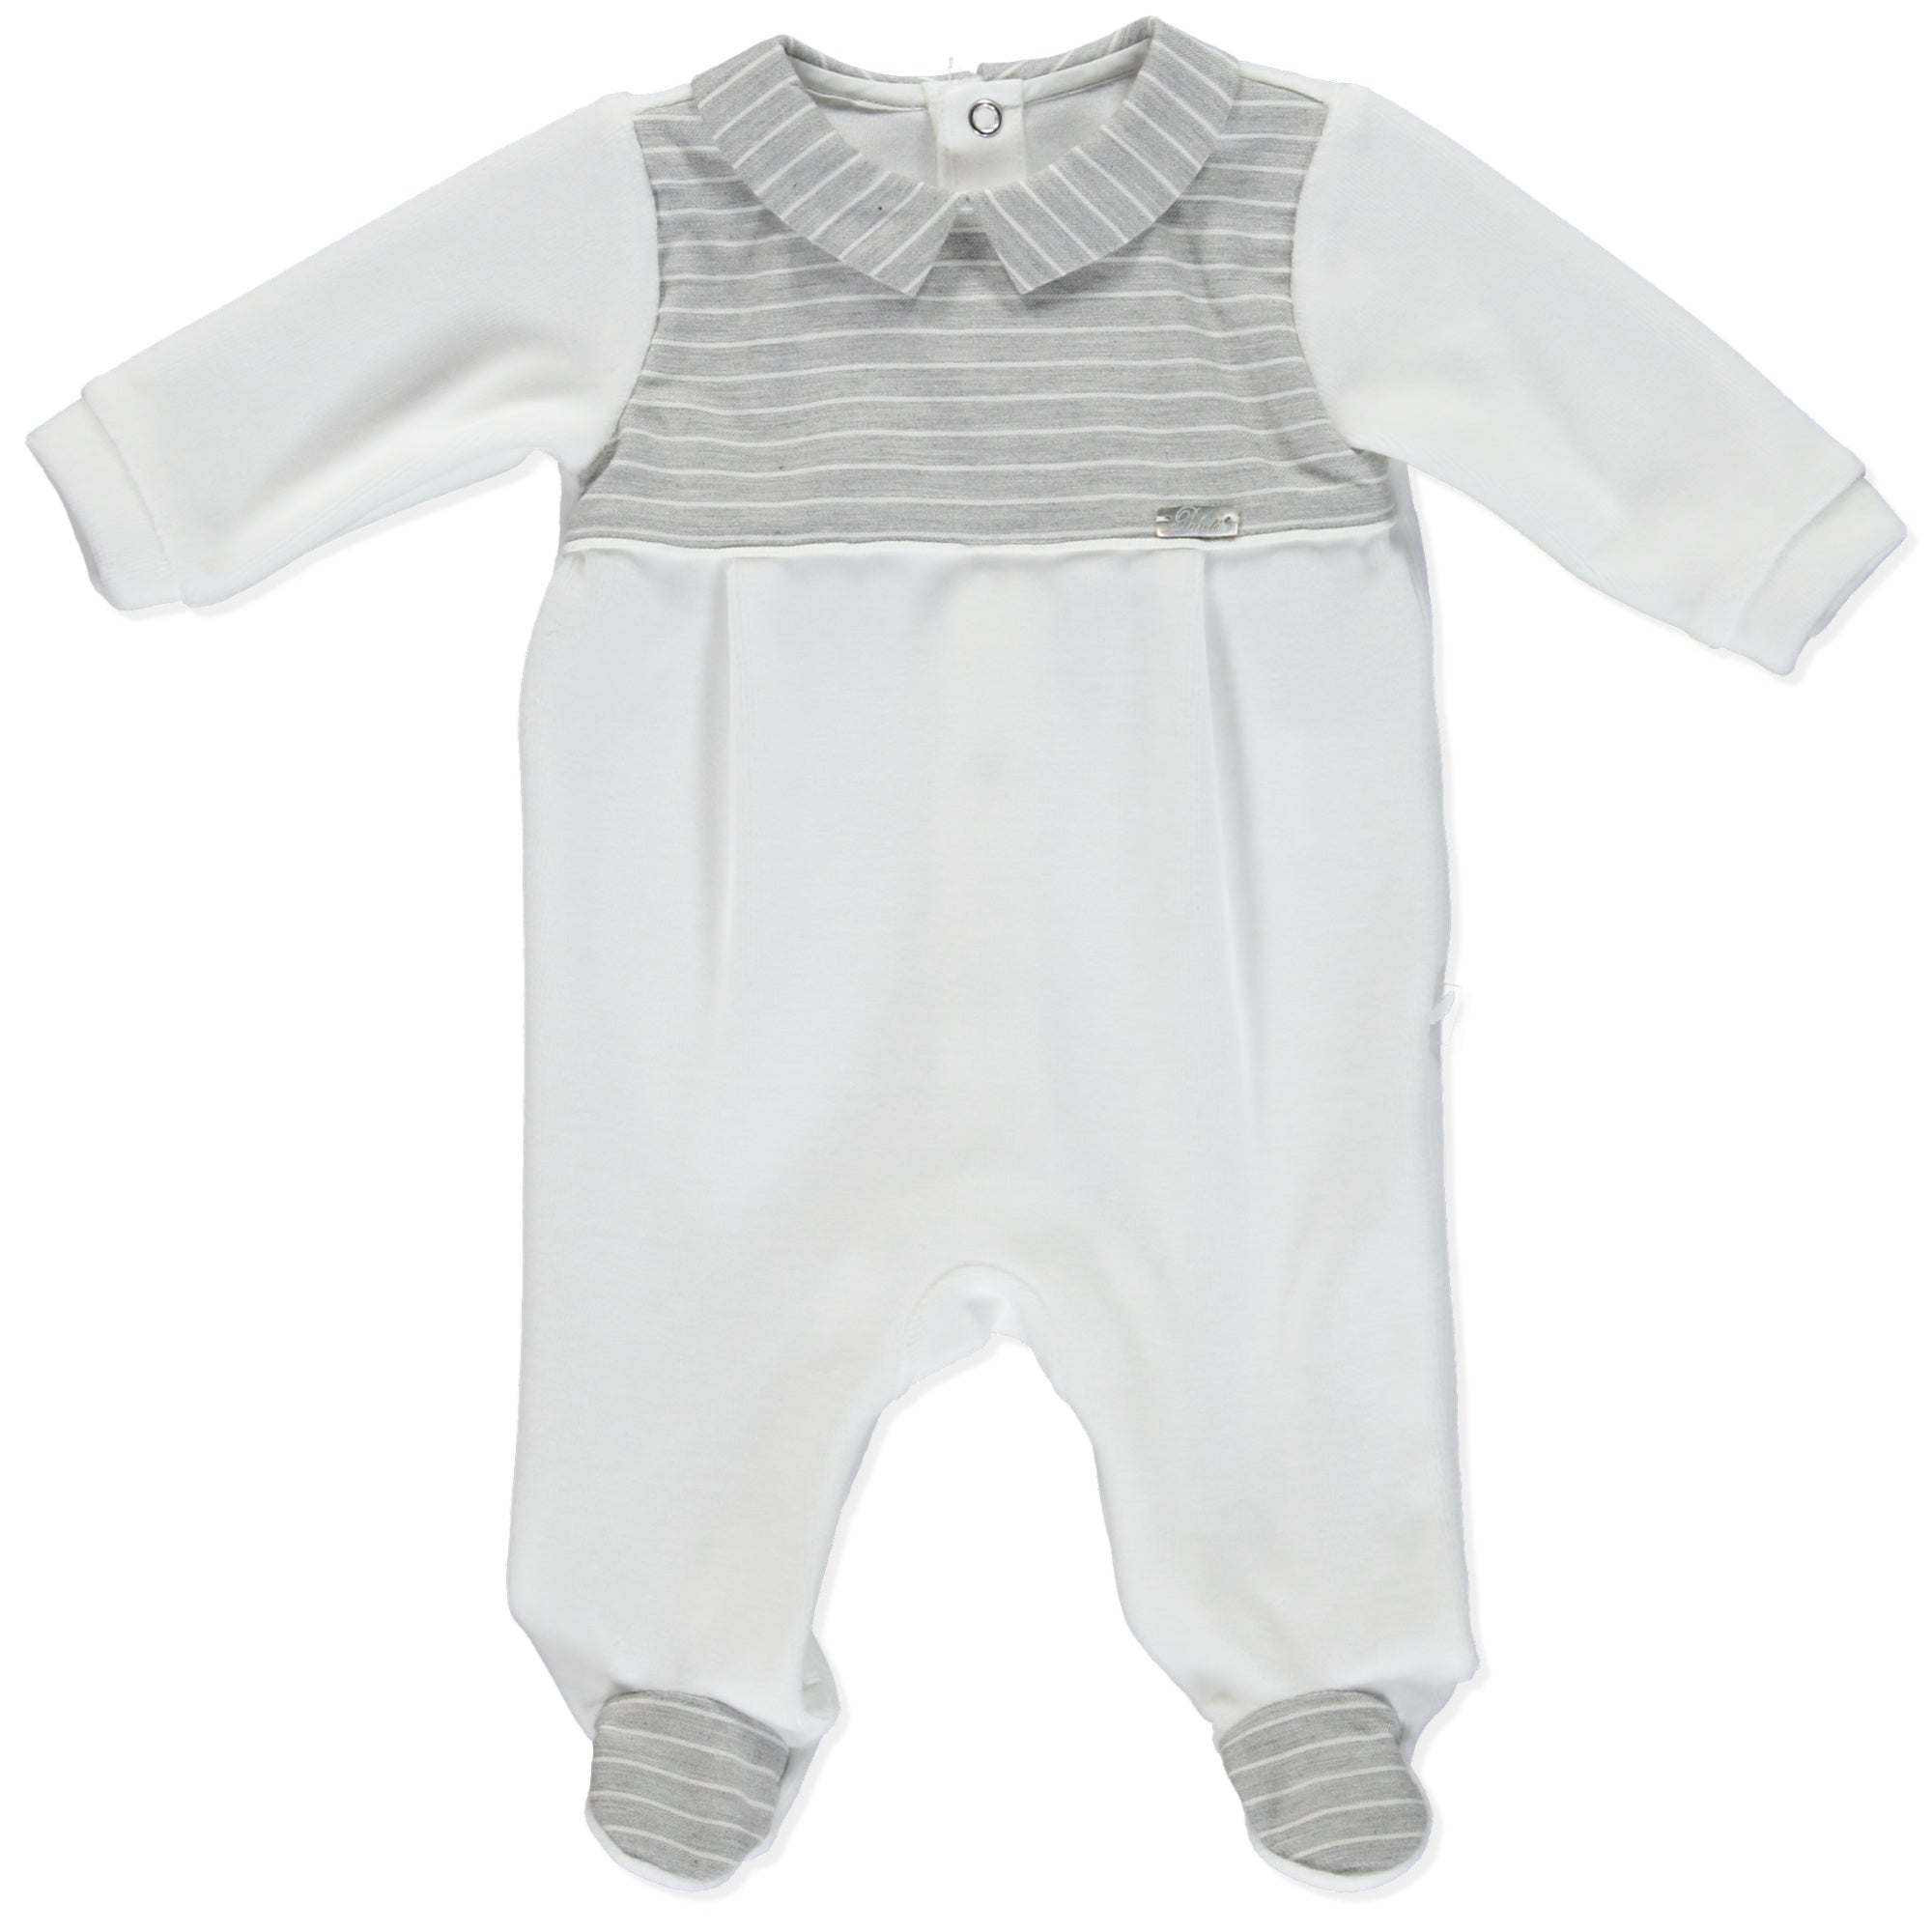 Purete Du Bebe Babygrow Grey and White stripes Essentials